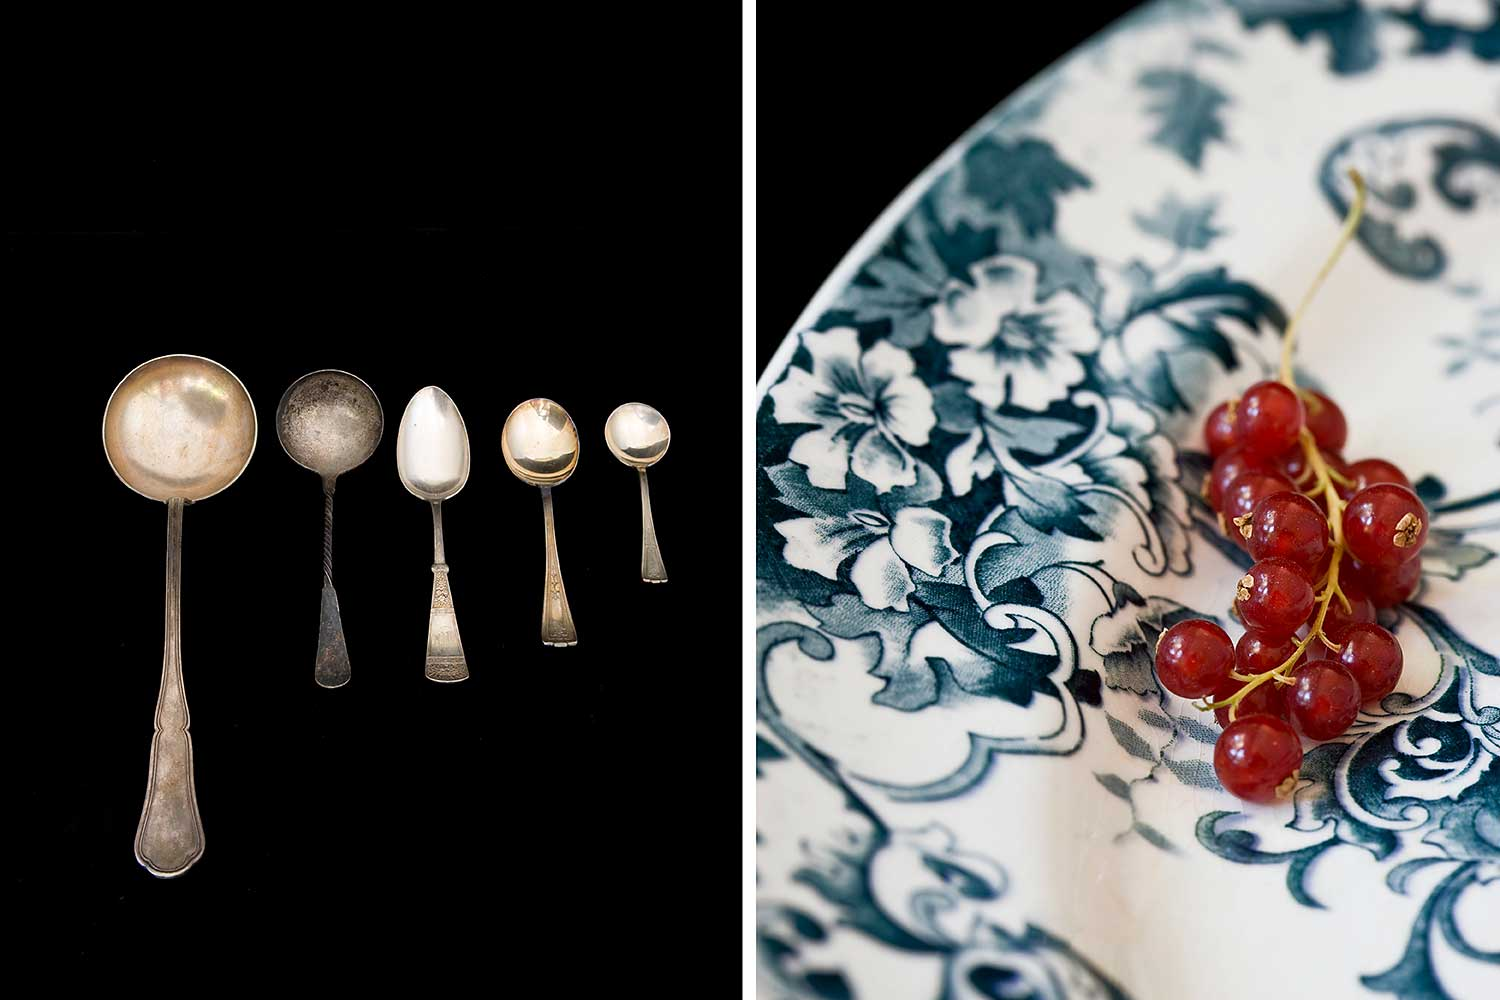 Vintage spoons and plate